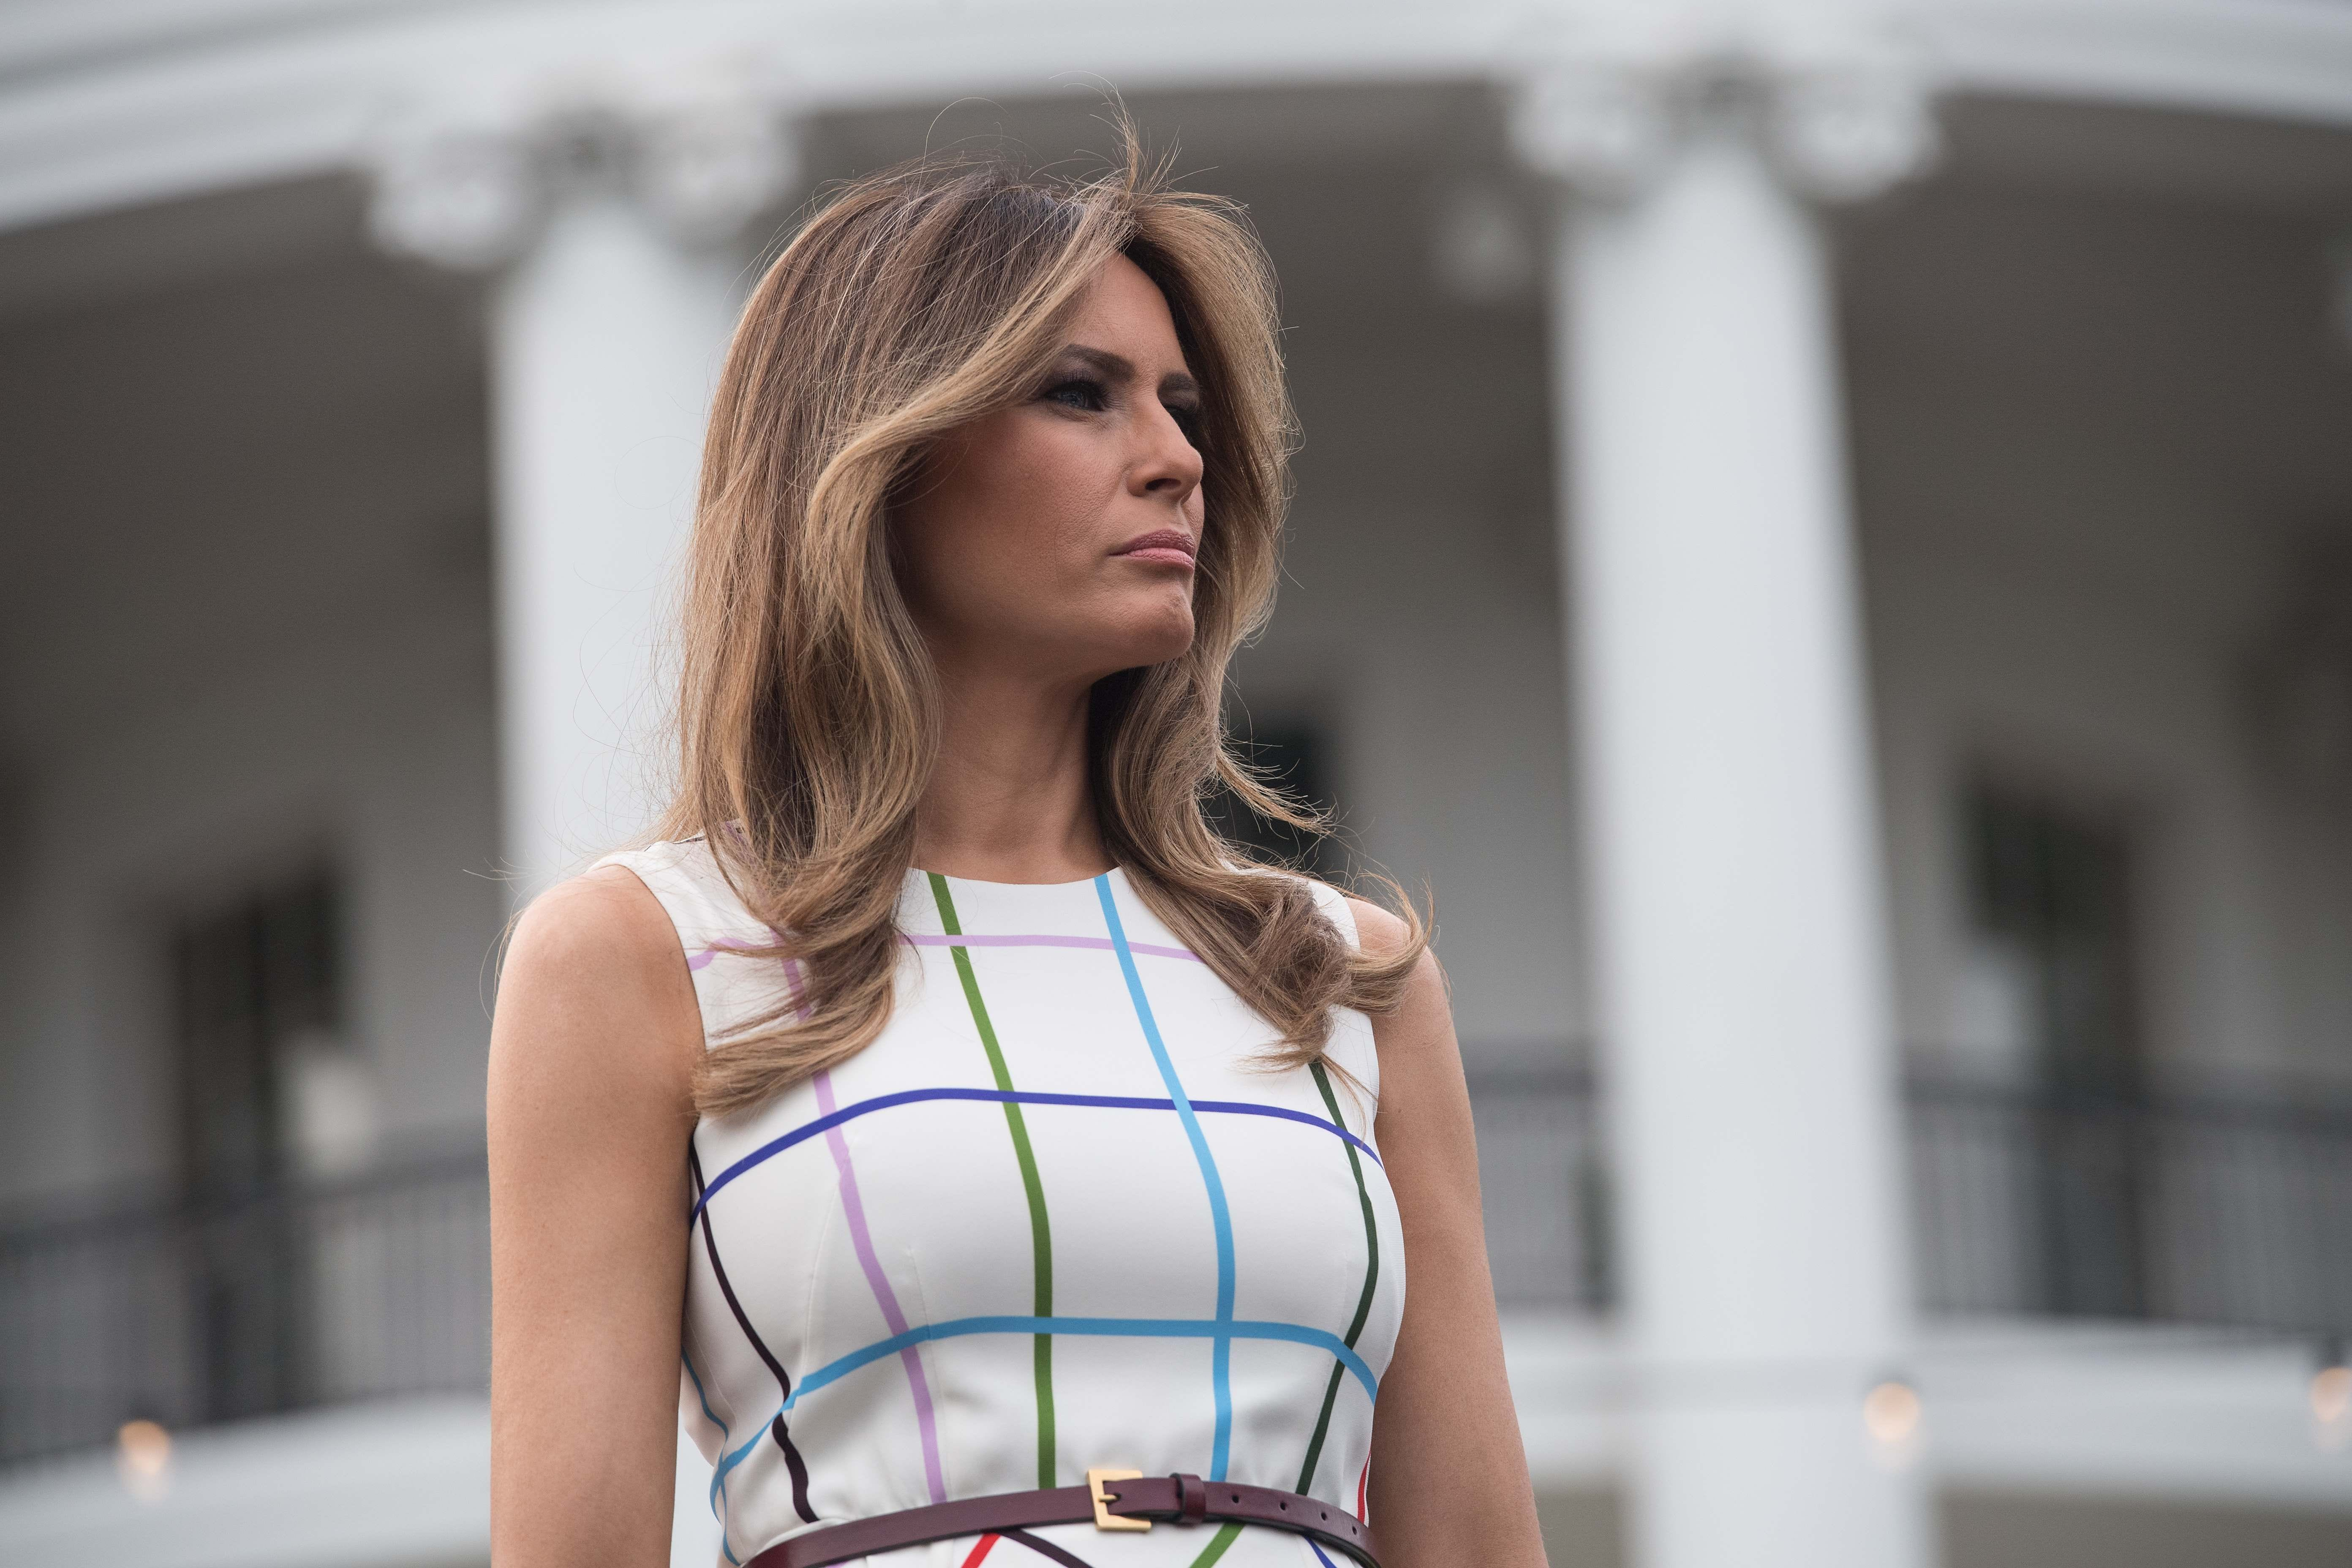 Melania Trump sports chic, colorful dress at Congressional Picnic